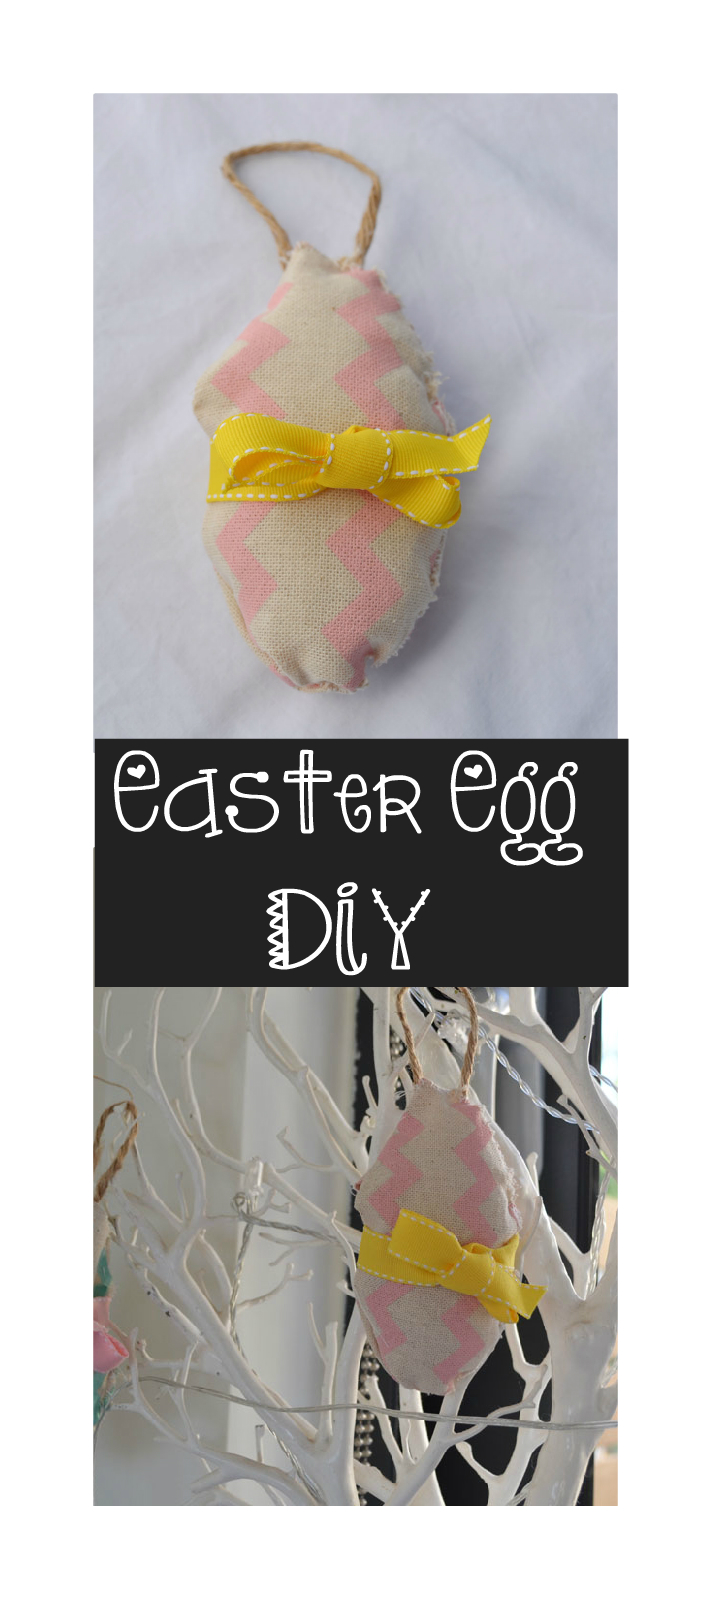 diy easter egg sew kit